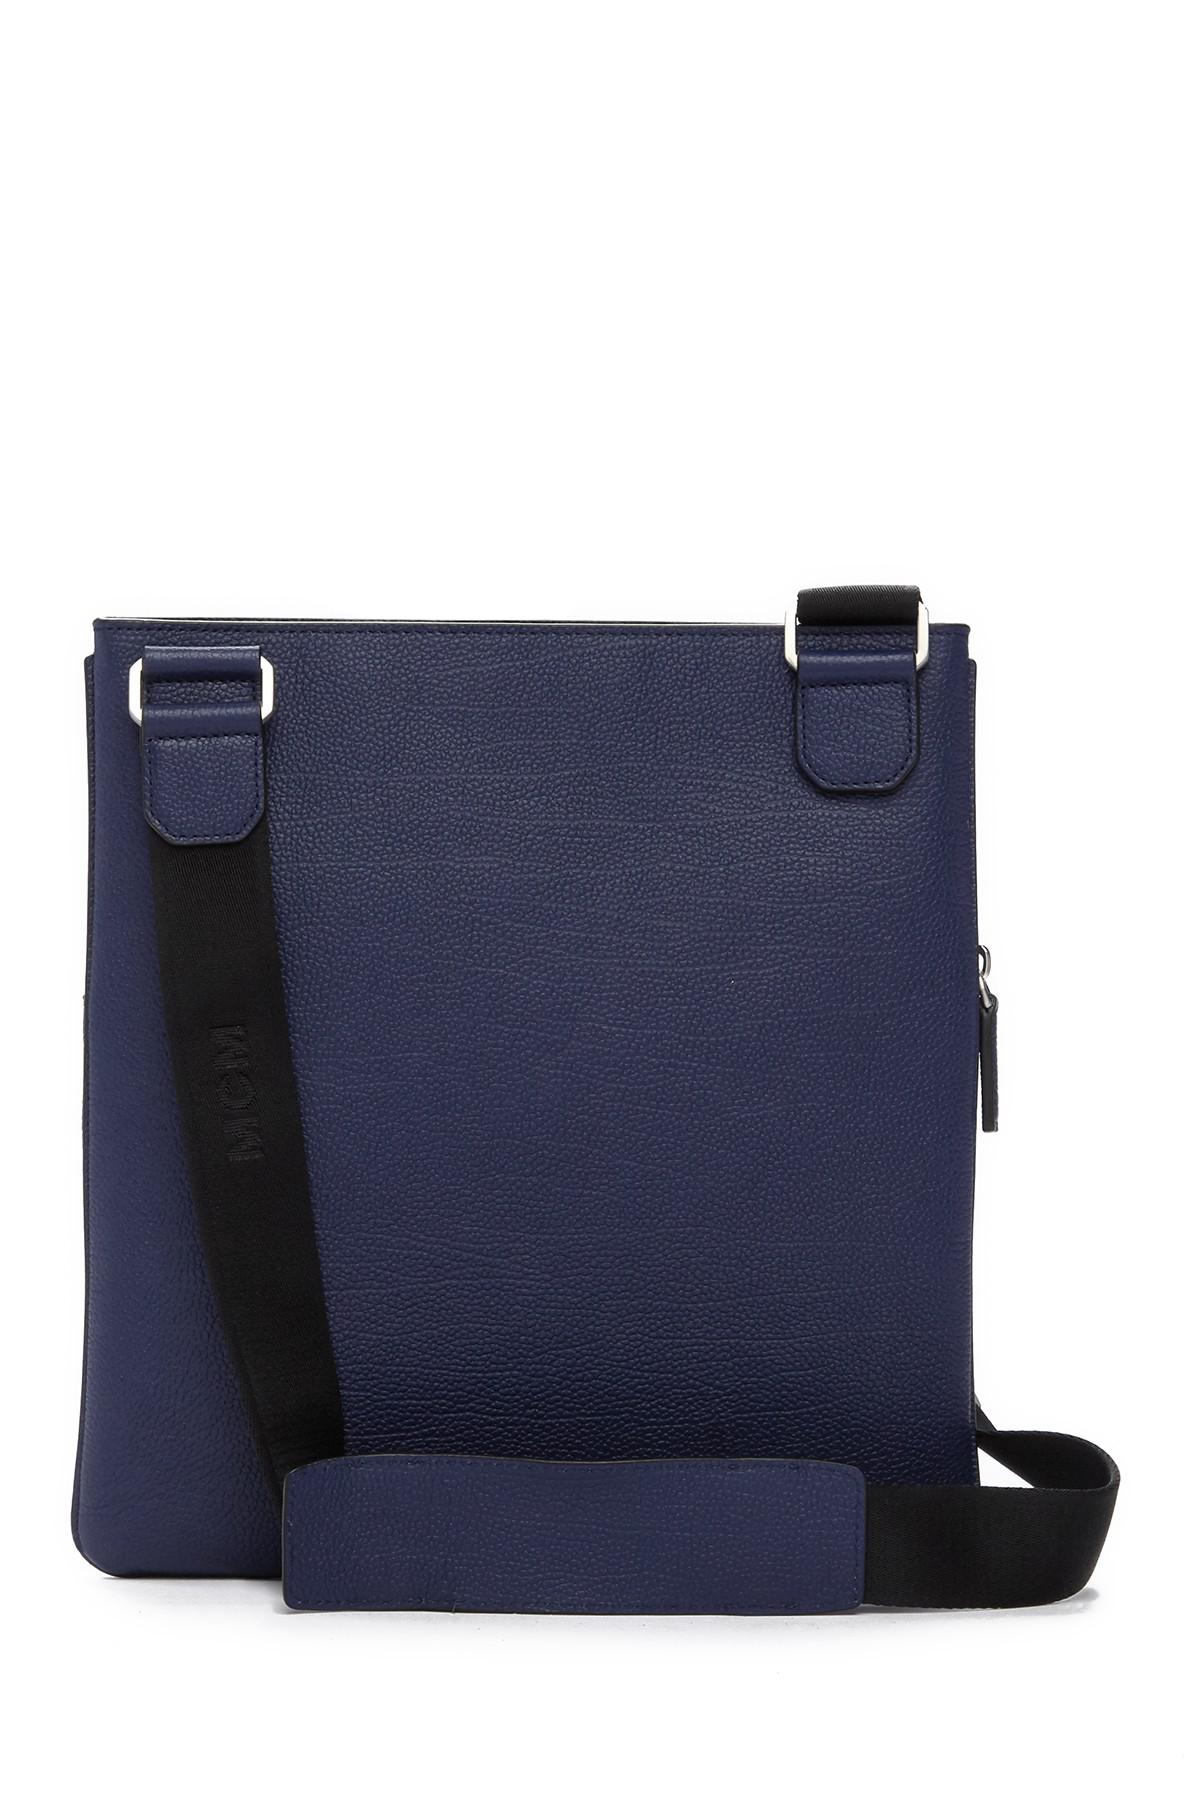 6a1bf66aa36e Lyst - MCM Ottomar Grain Leather Messenger Bag in Blue